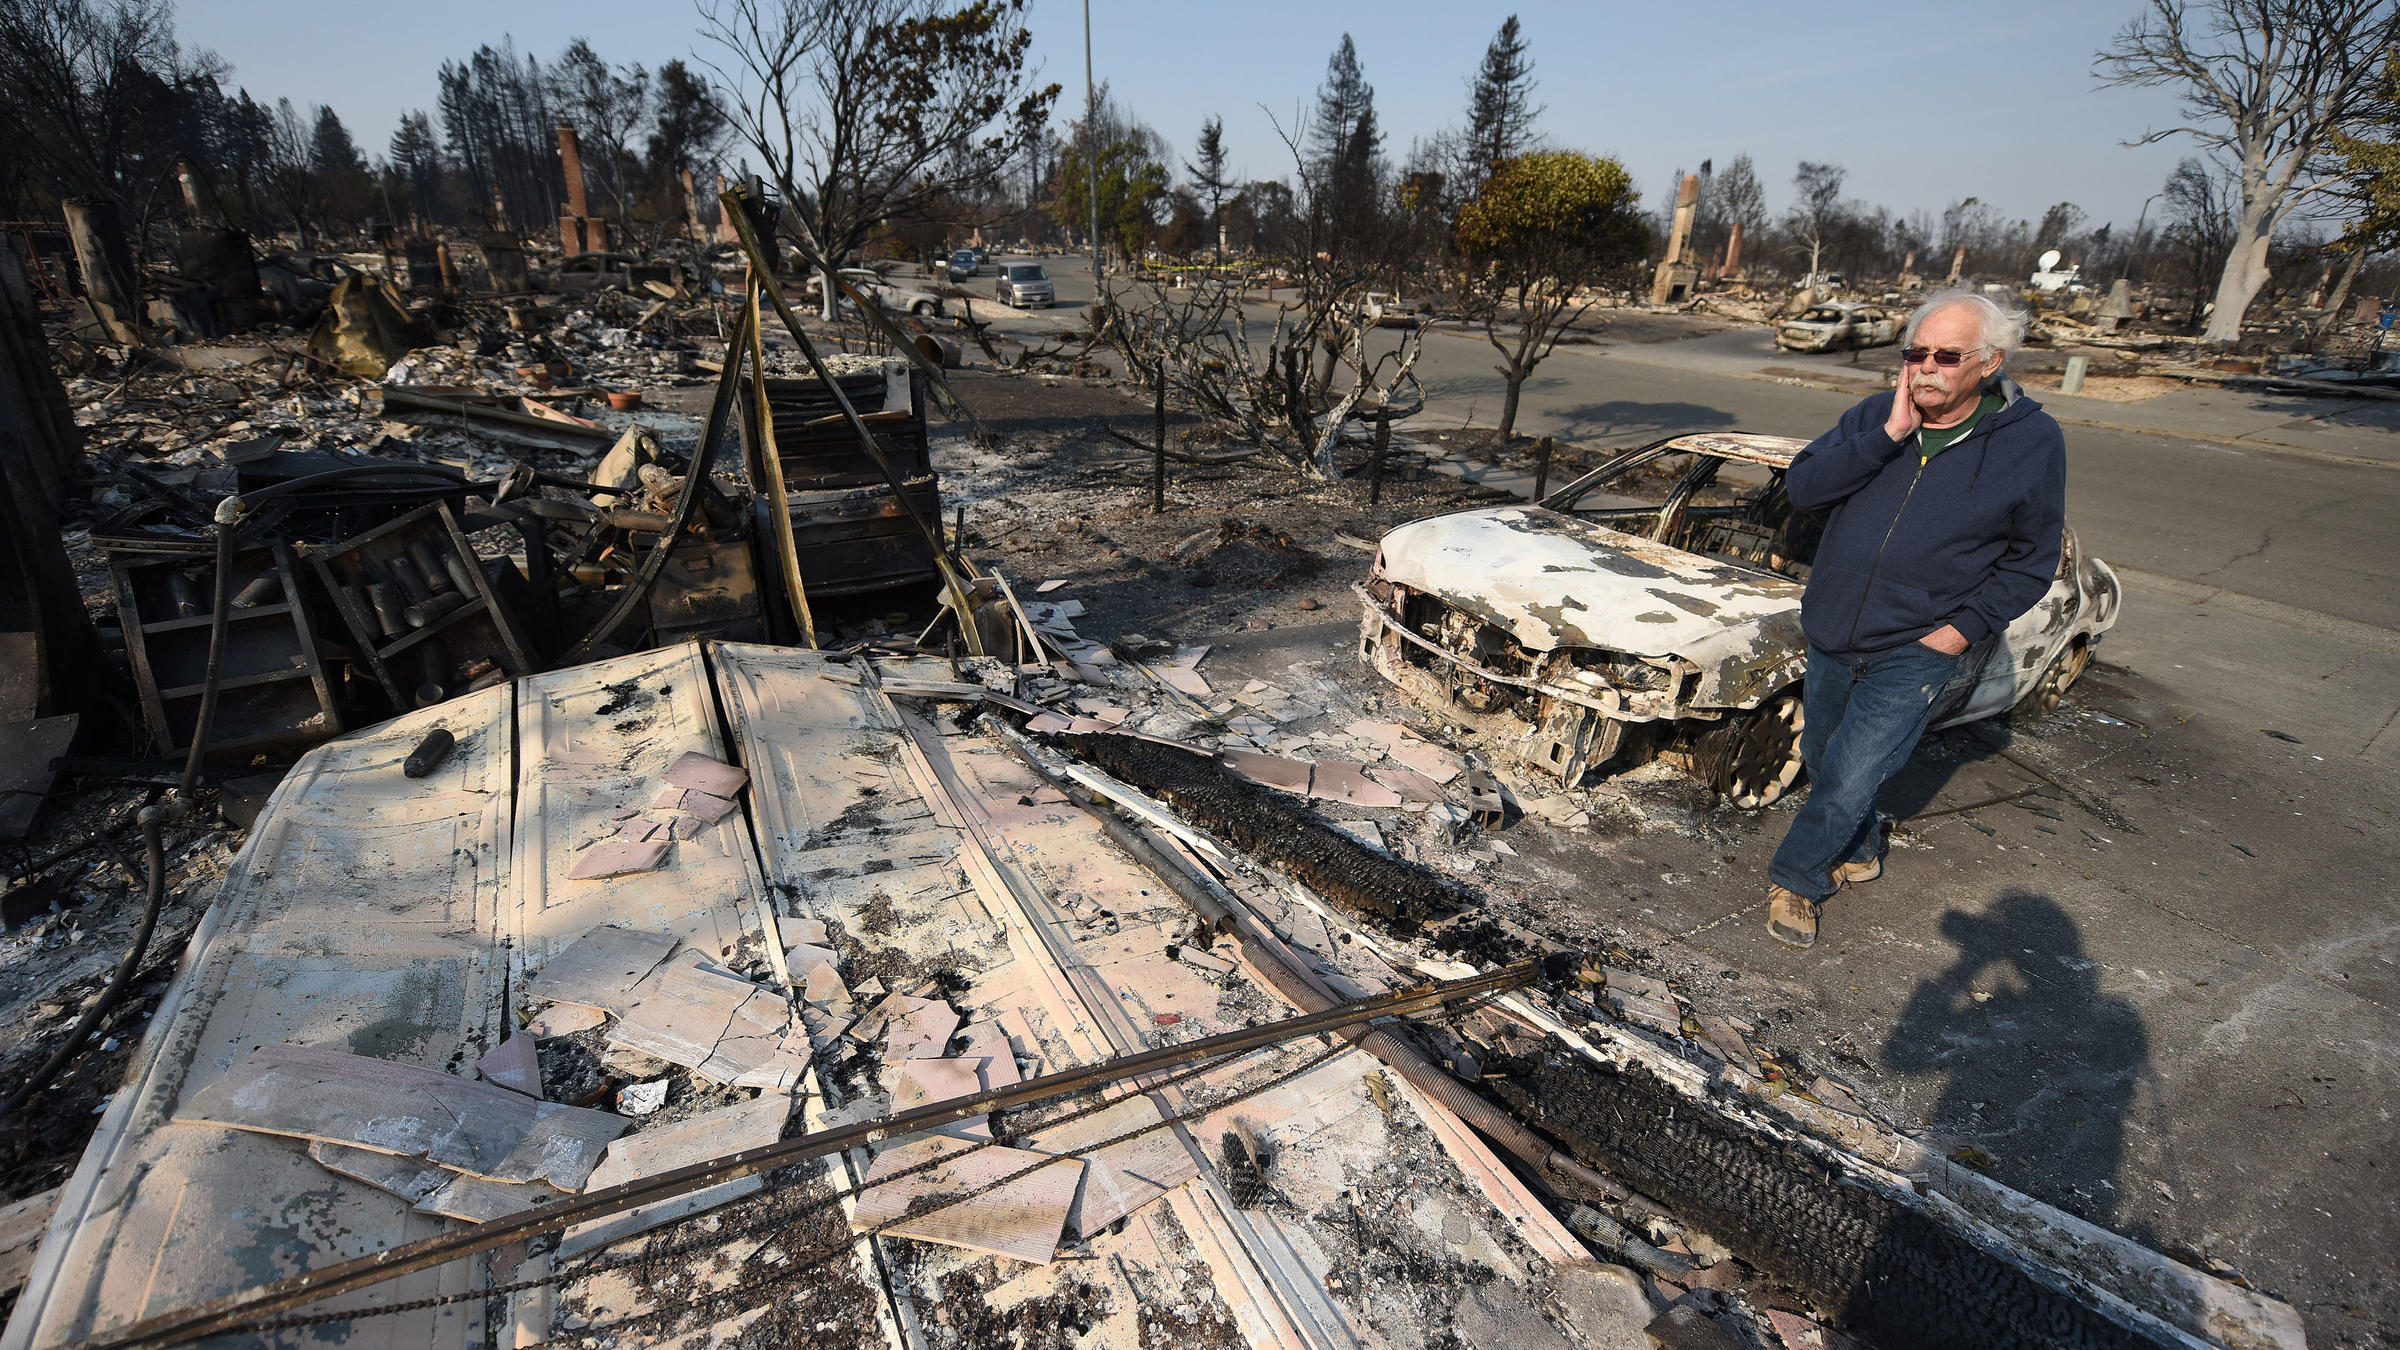 My Firsthand Account of the Devastating Northern California Fires in My Hometown